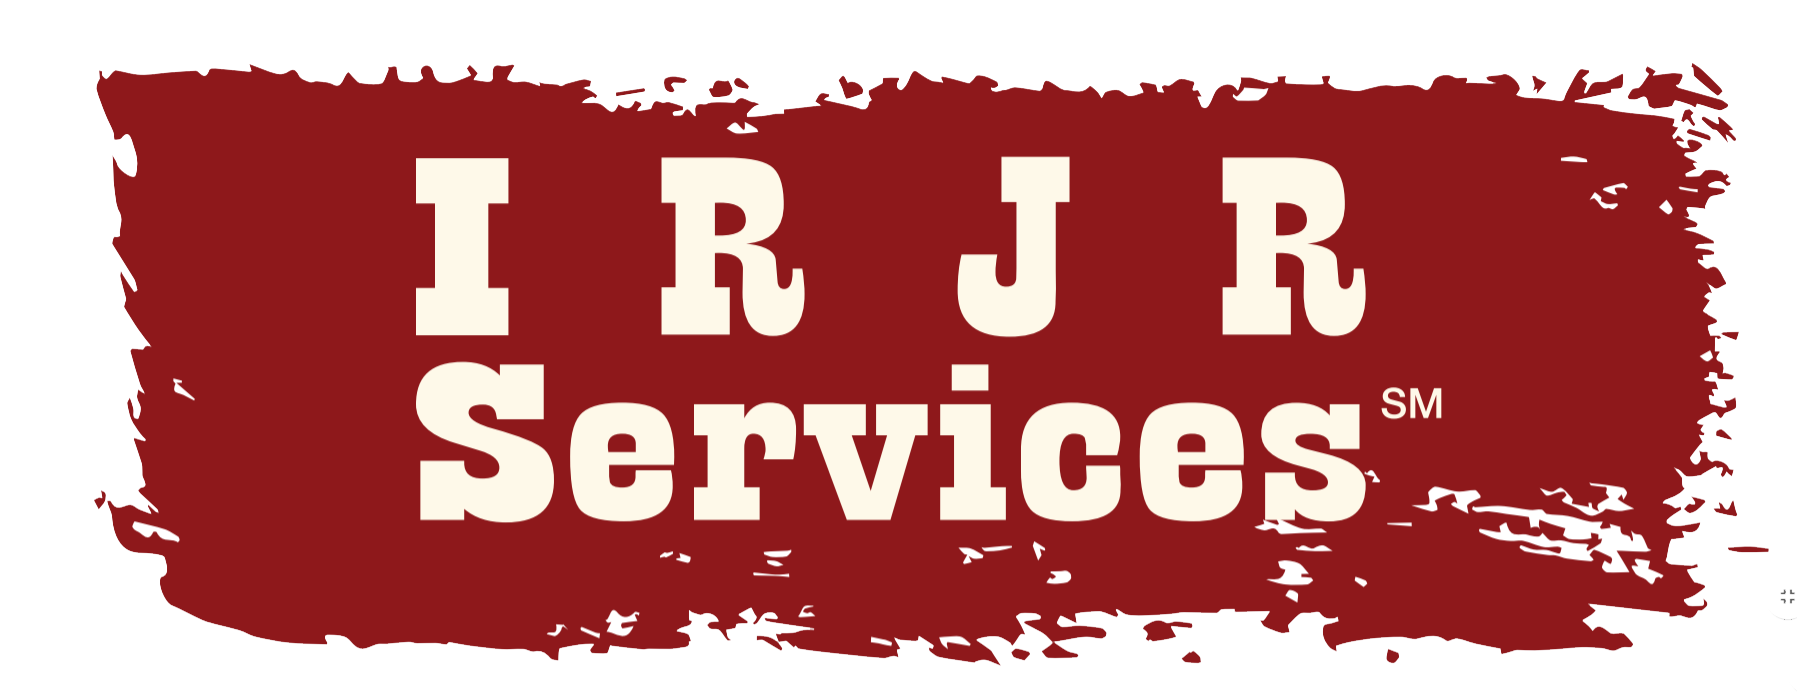 IRJR Services, Inc. | Debris, Junk, and Tree Removal Experts